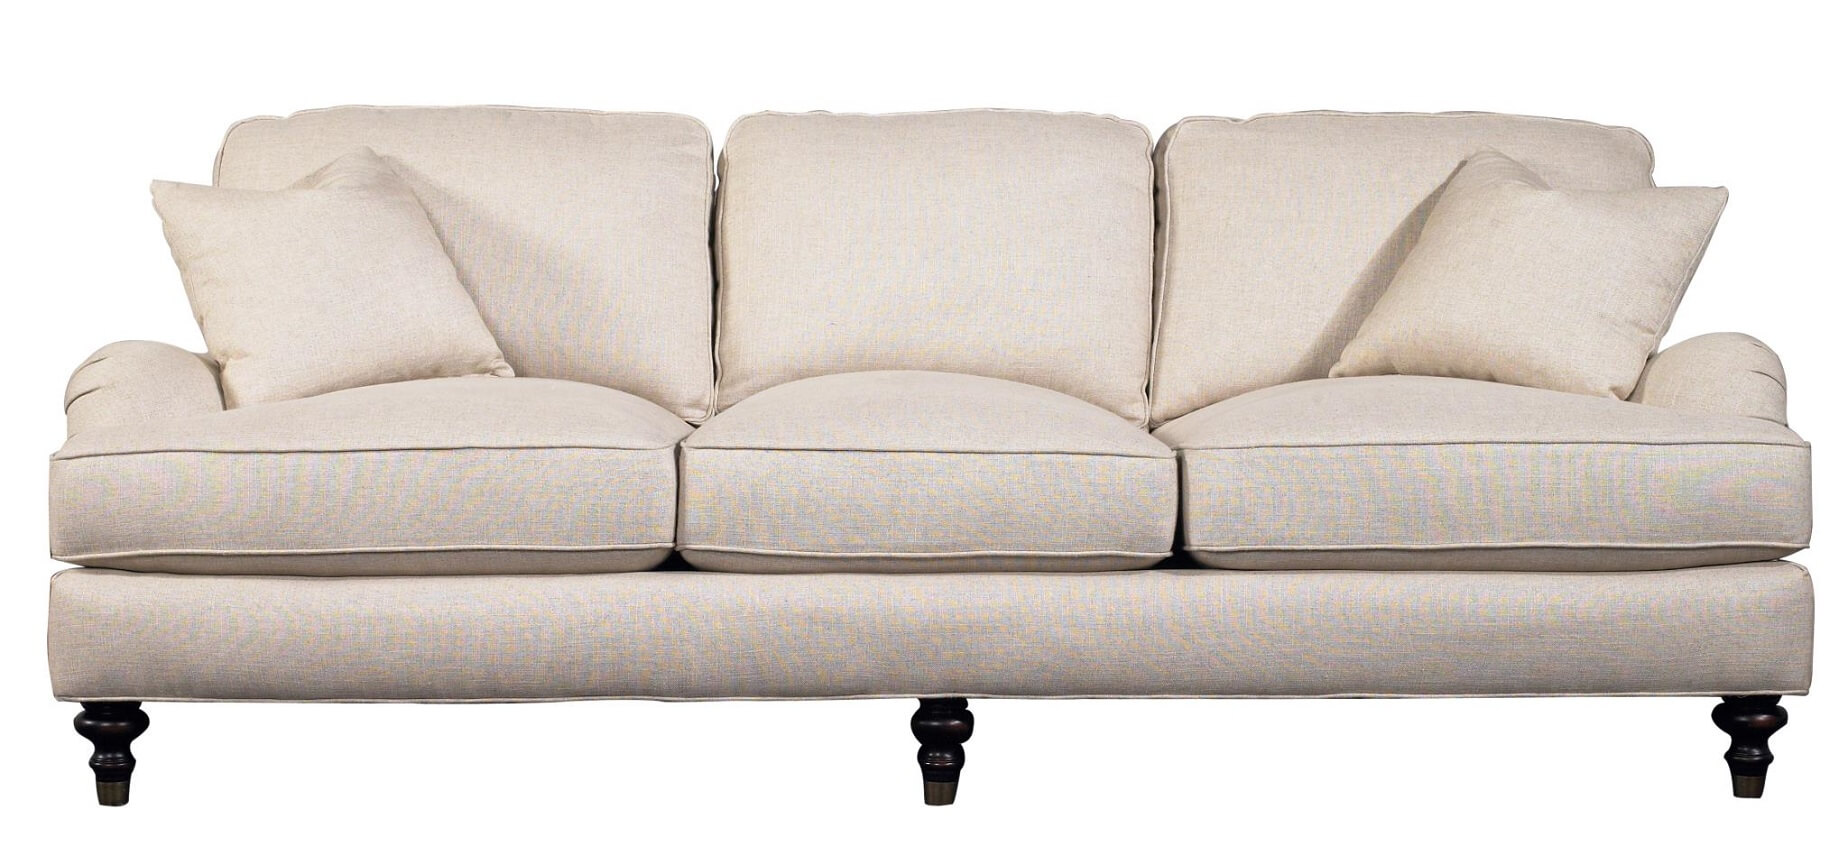 Sloane Transitional Sofa By Spectra Home Usa Furniture Online ~ What Is A Transitional Sofa